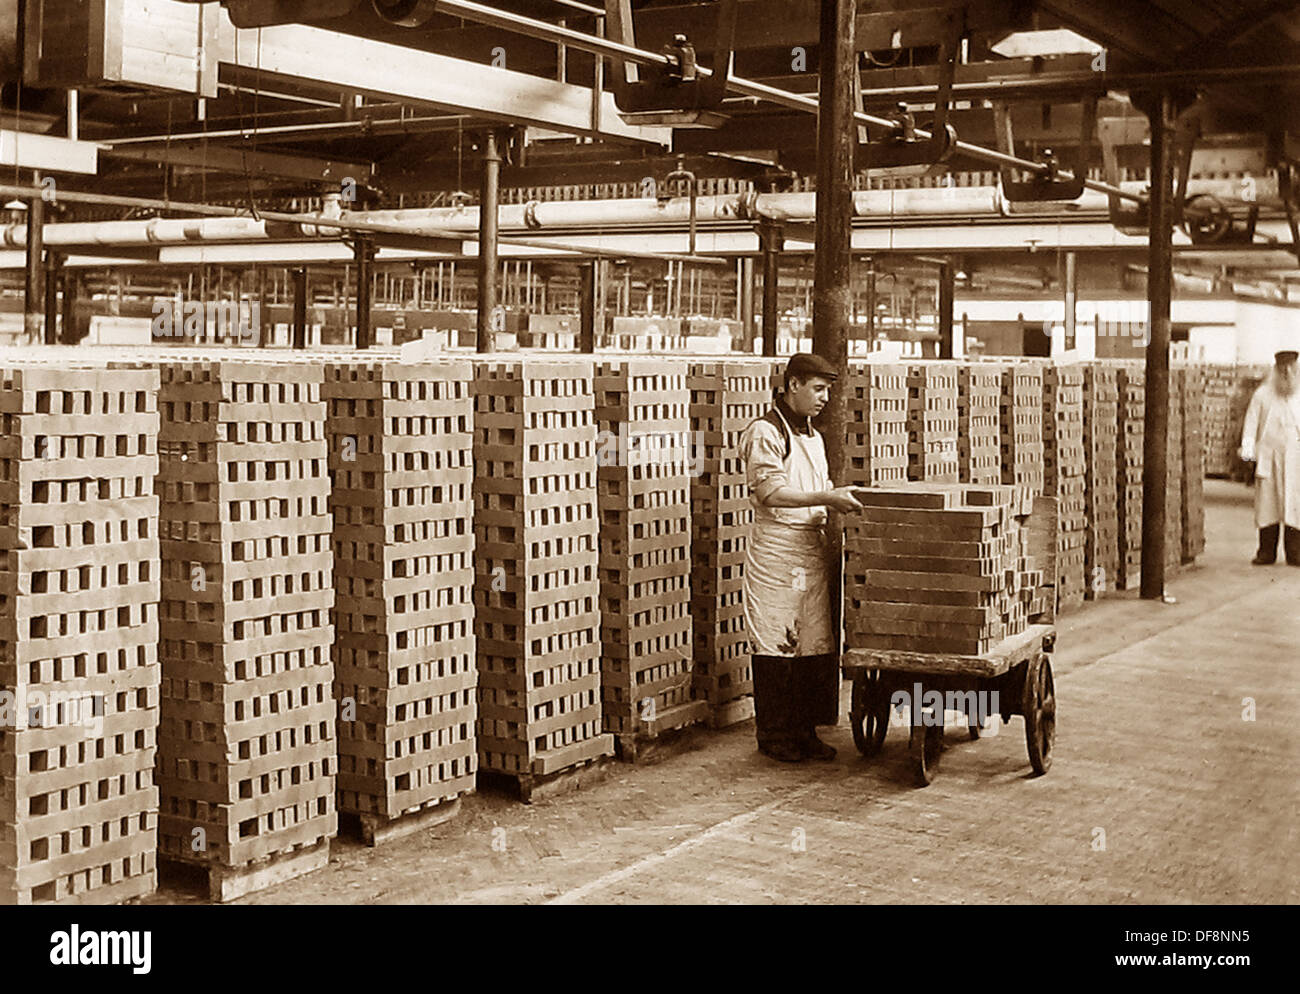 Port Sunlight - soap stacked to dry - early 1900s - Stock Image